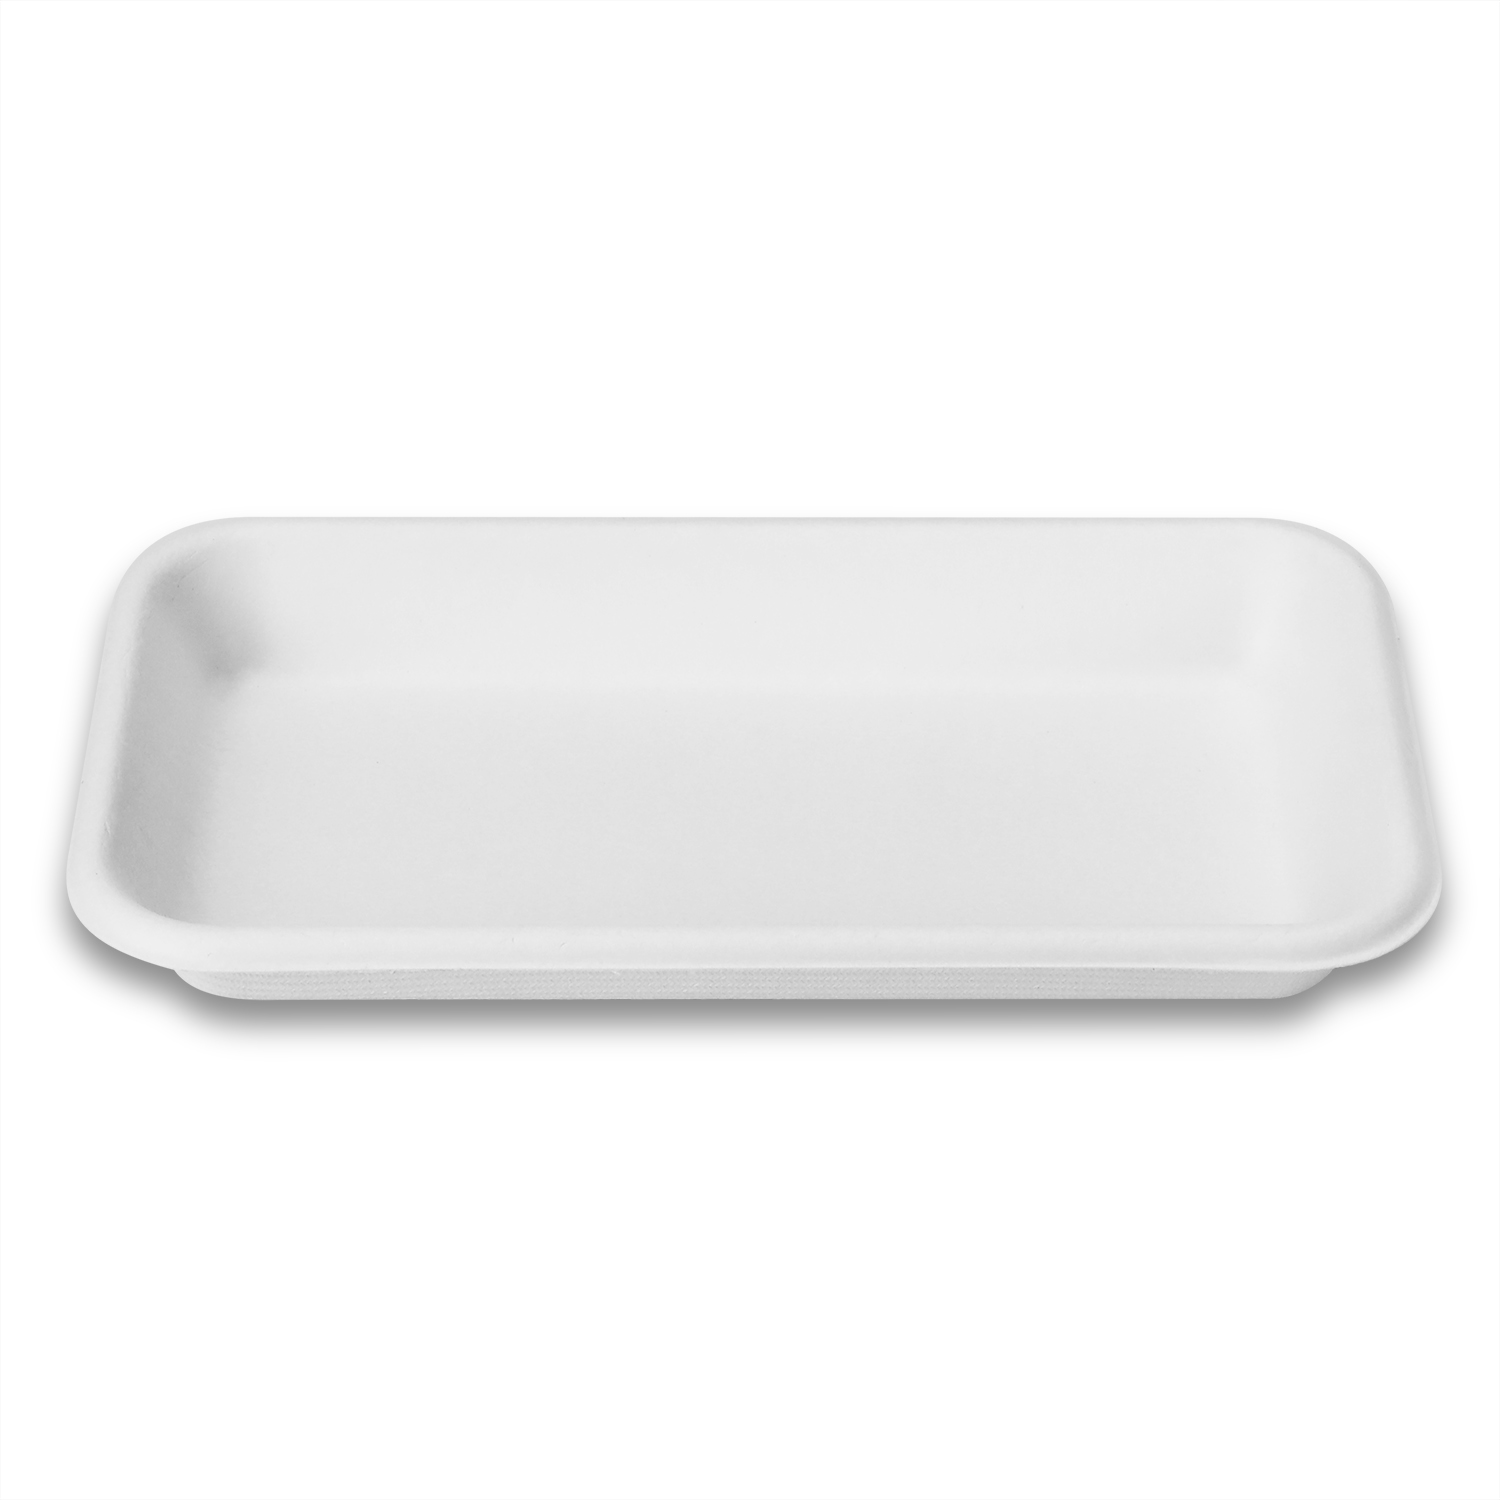 White Biodegradable Meat Tray Microwavable Restaurant Eco Friendly Fresh Food Retail Packaging Trays